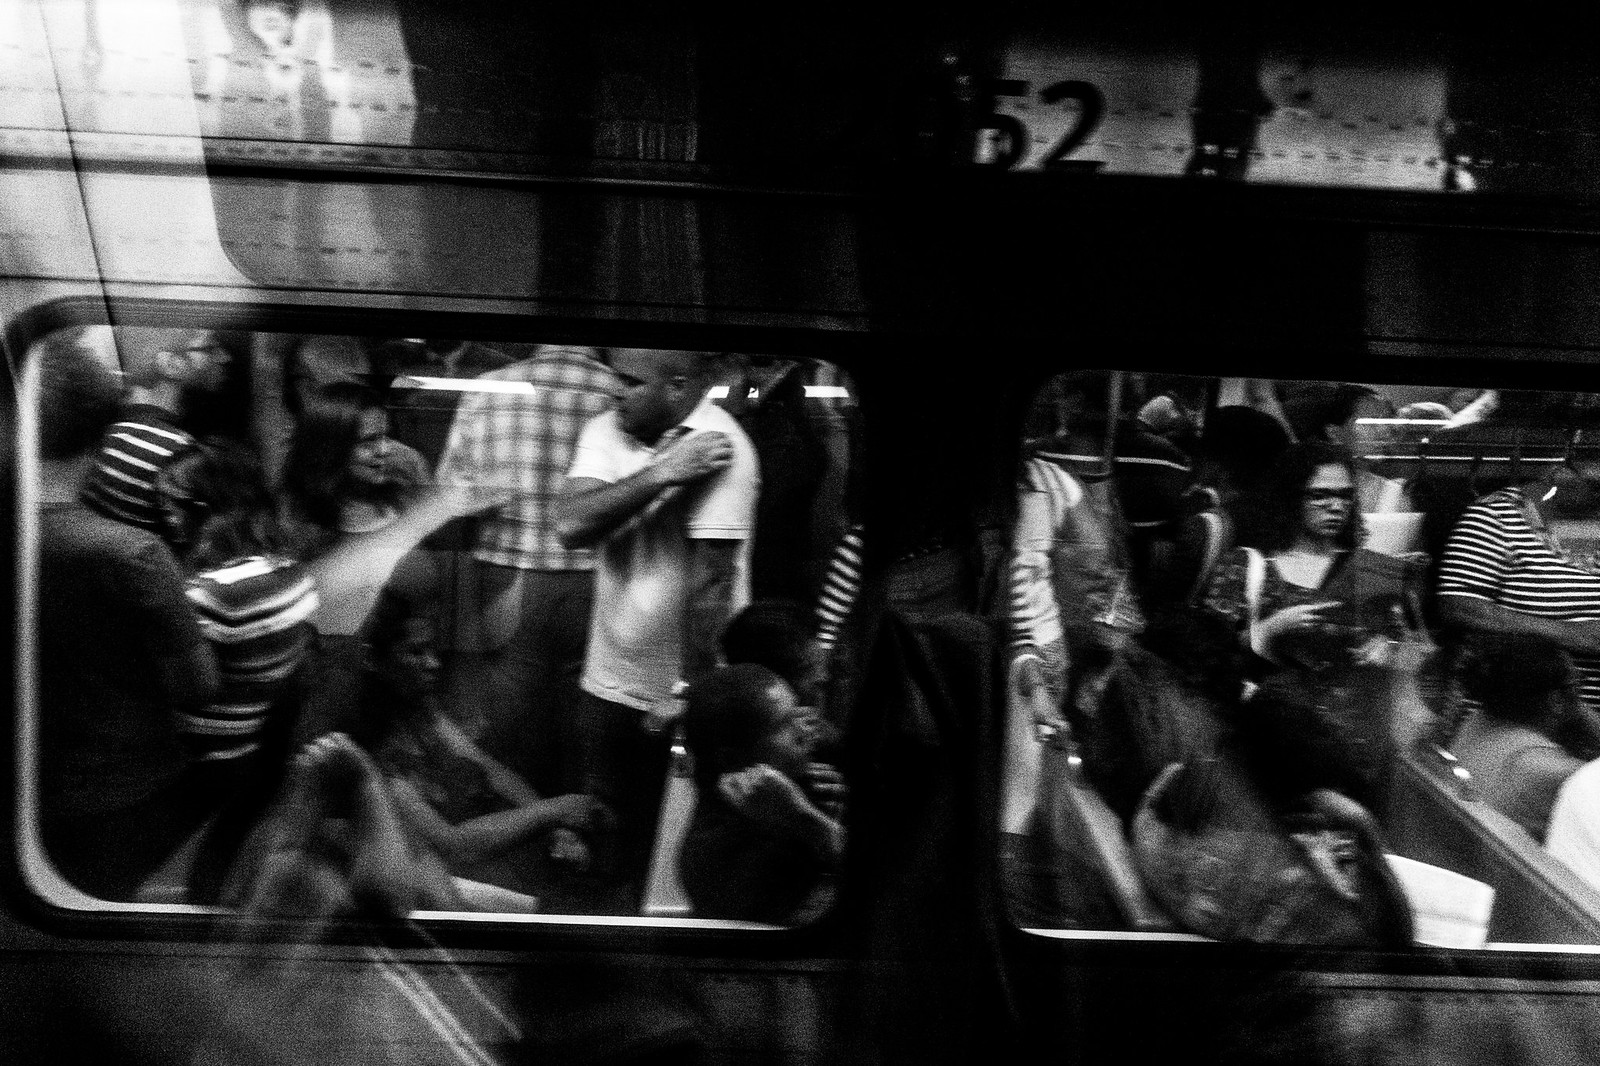 Notes from Underground - The train | by CaOS - www.caosphotos.com.br